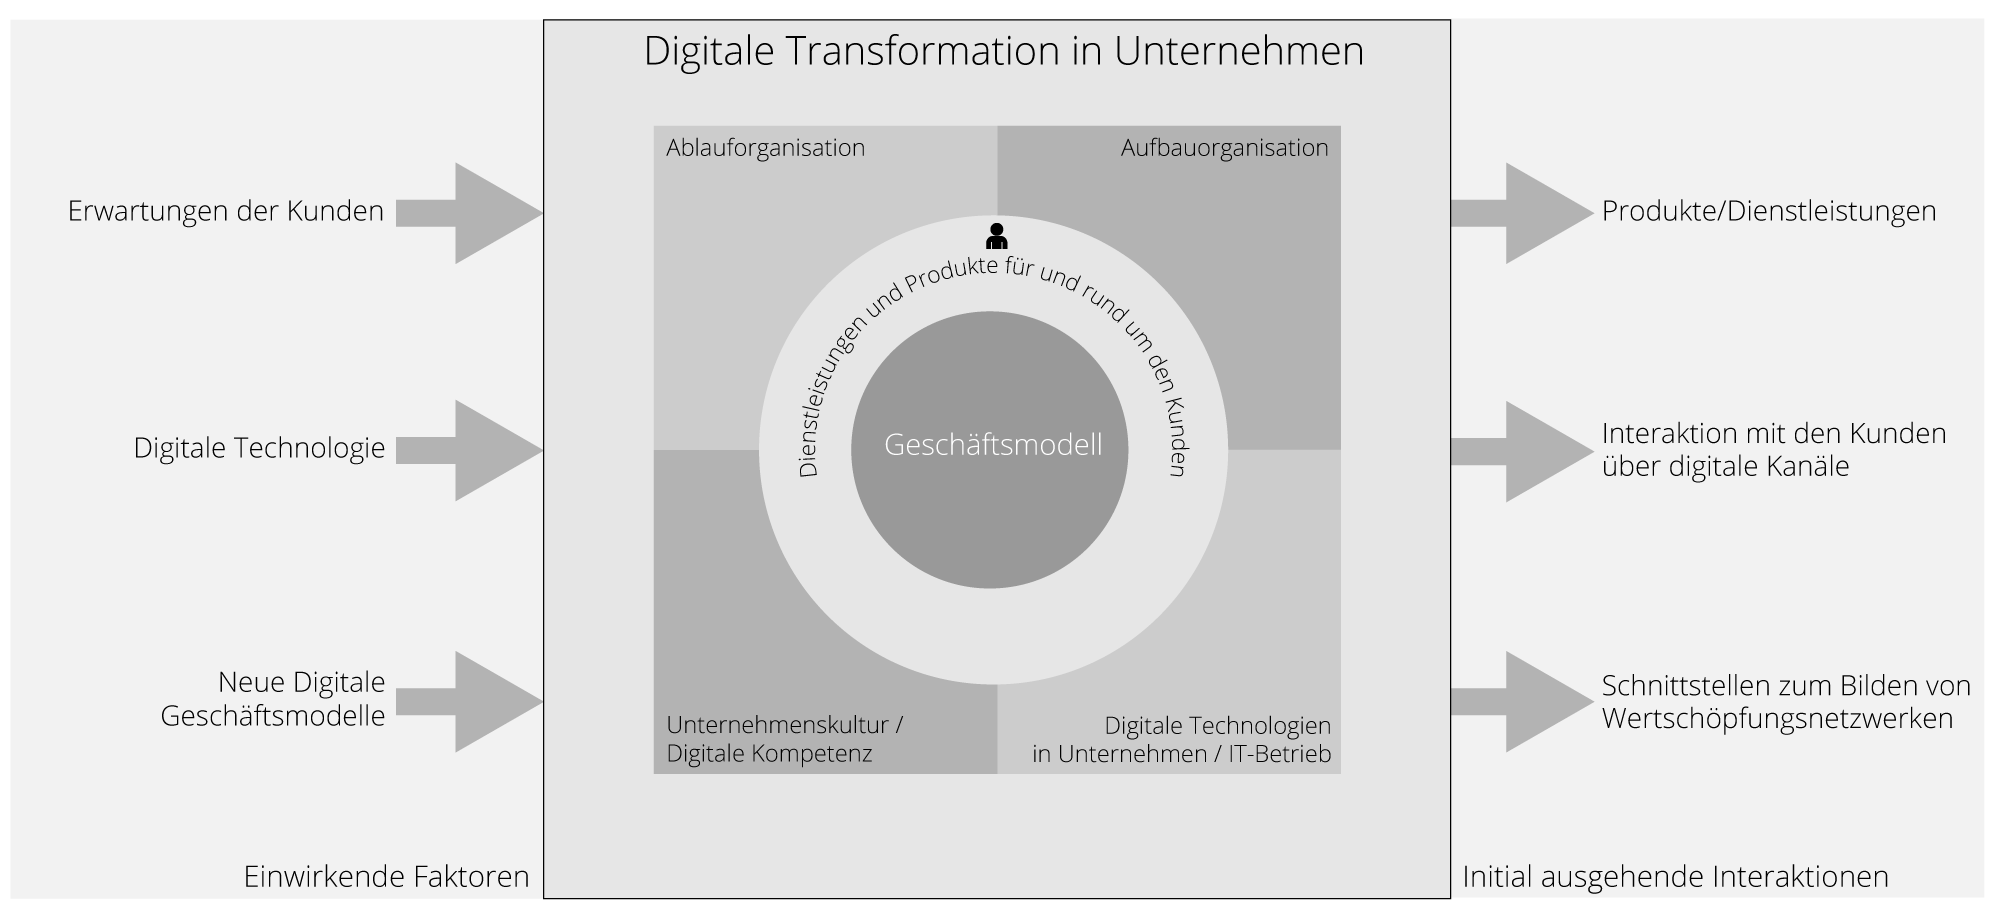 Die digitale Transformation in UnternehmenBy Thomas Kofler CC BY SA 4.0 from Wikimedia Commons